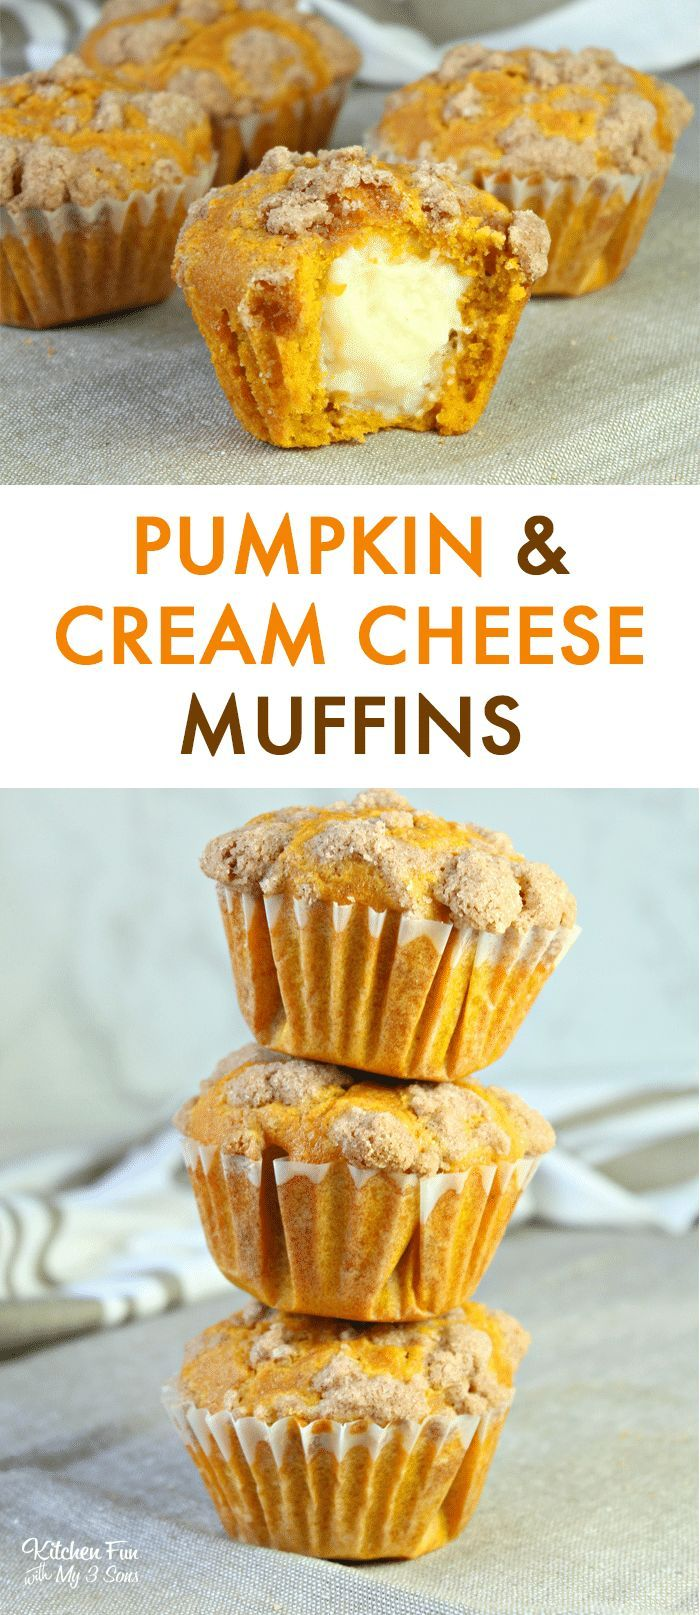 Pumpkin Cream Cheese Muffins - Delicious Pumpkin Muffins With a Streusel Topping and Amazing Cream C #pumpkinmuffins